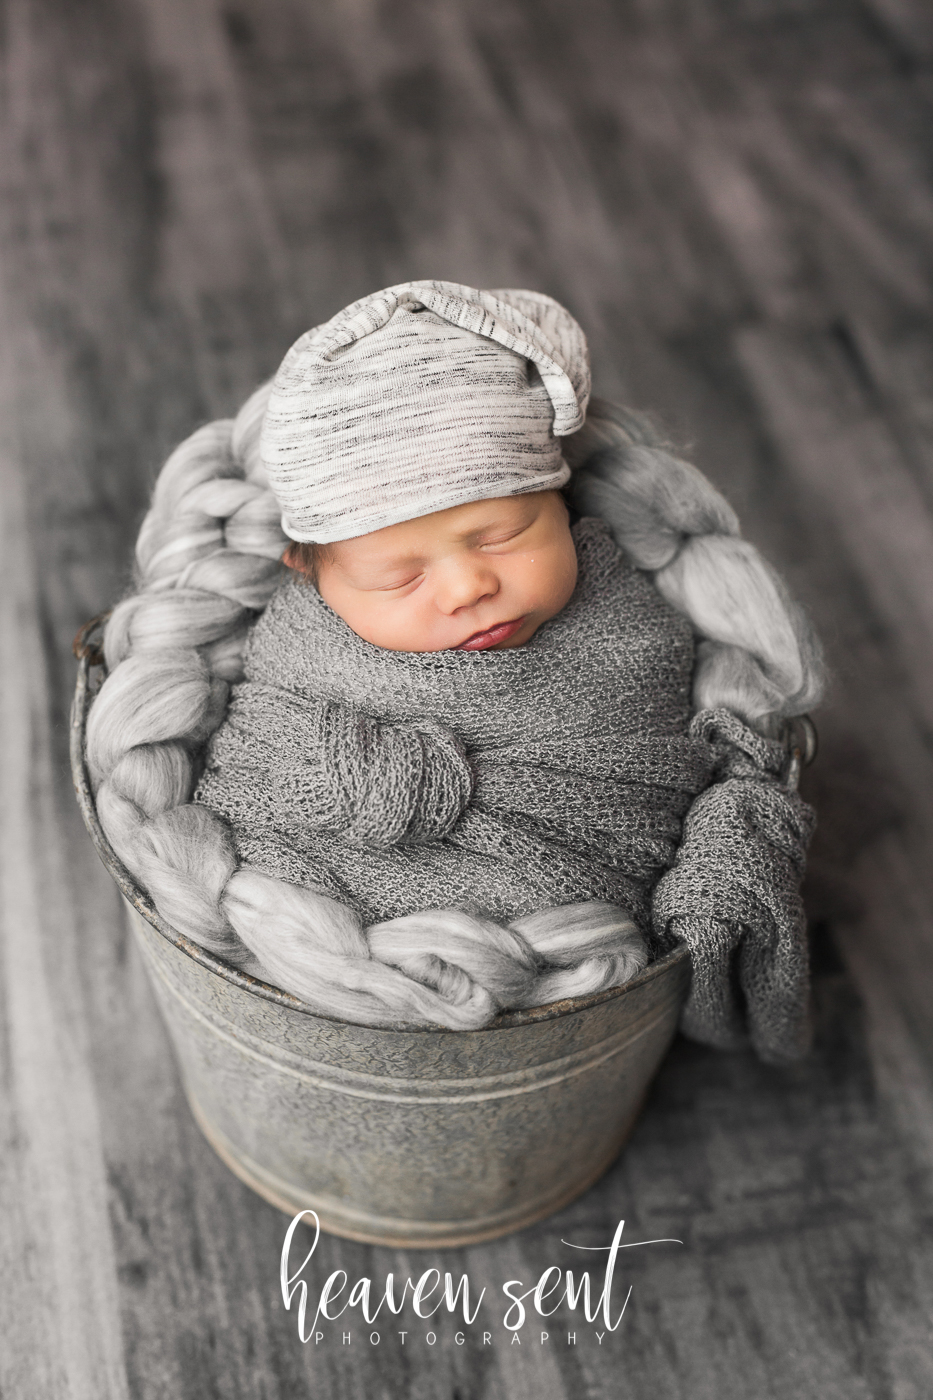 beau_newborn (40 of 84).jpg